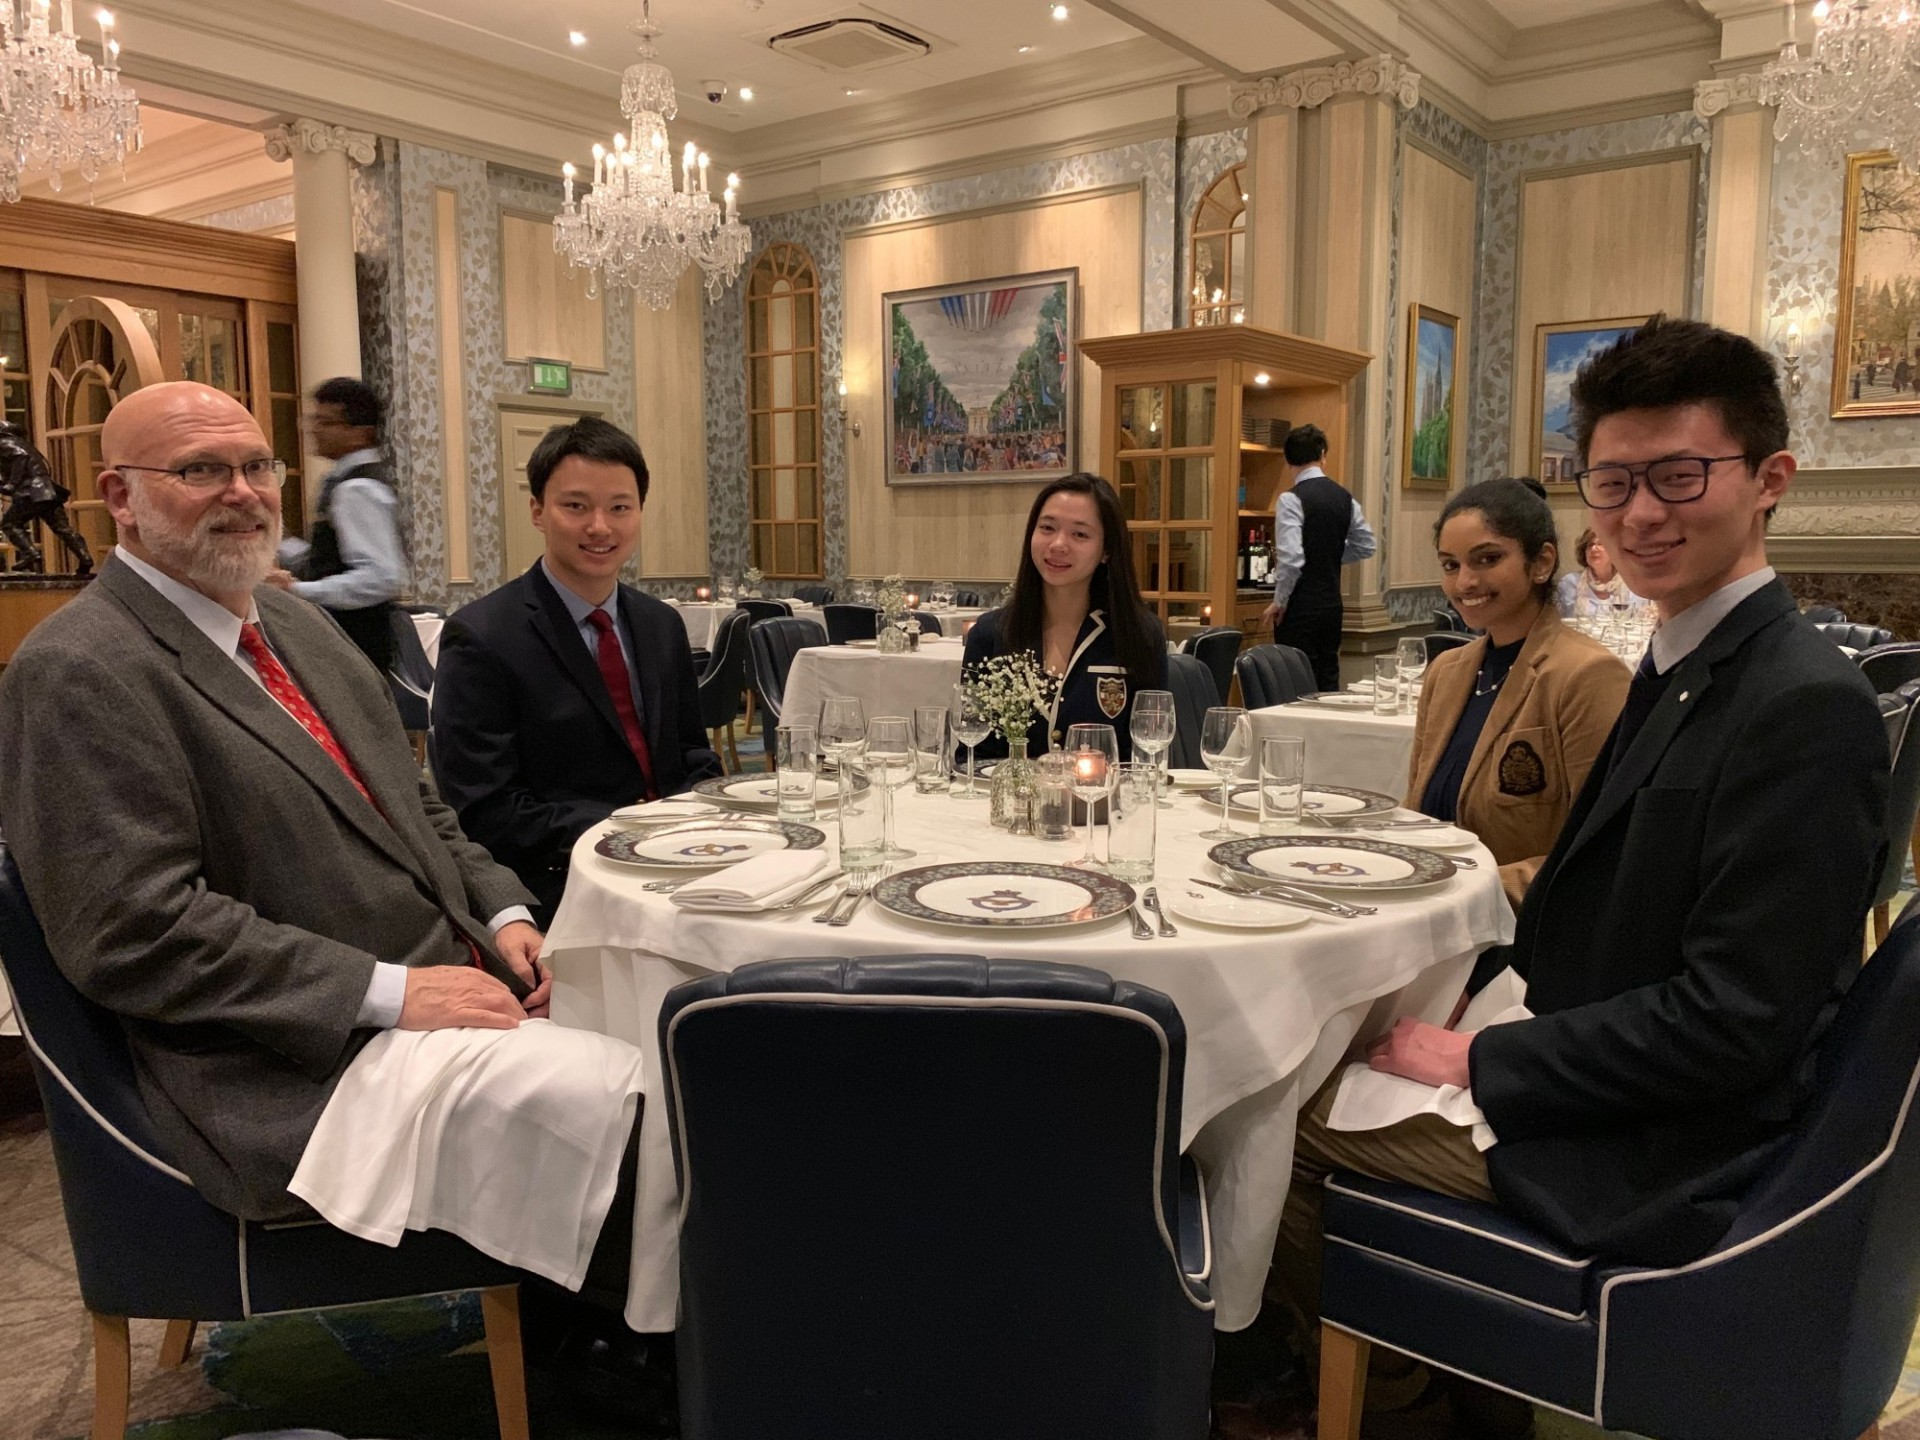 CWAR Fellows and Travis Anderson at the Royal Air Force Club